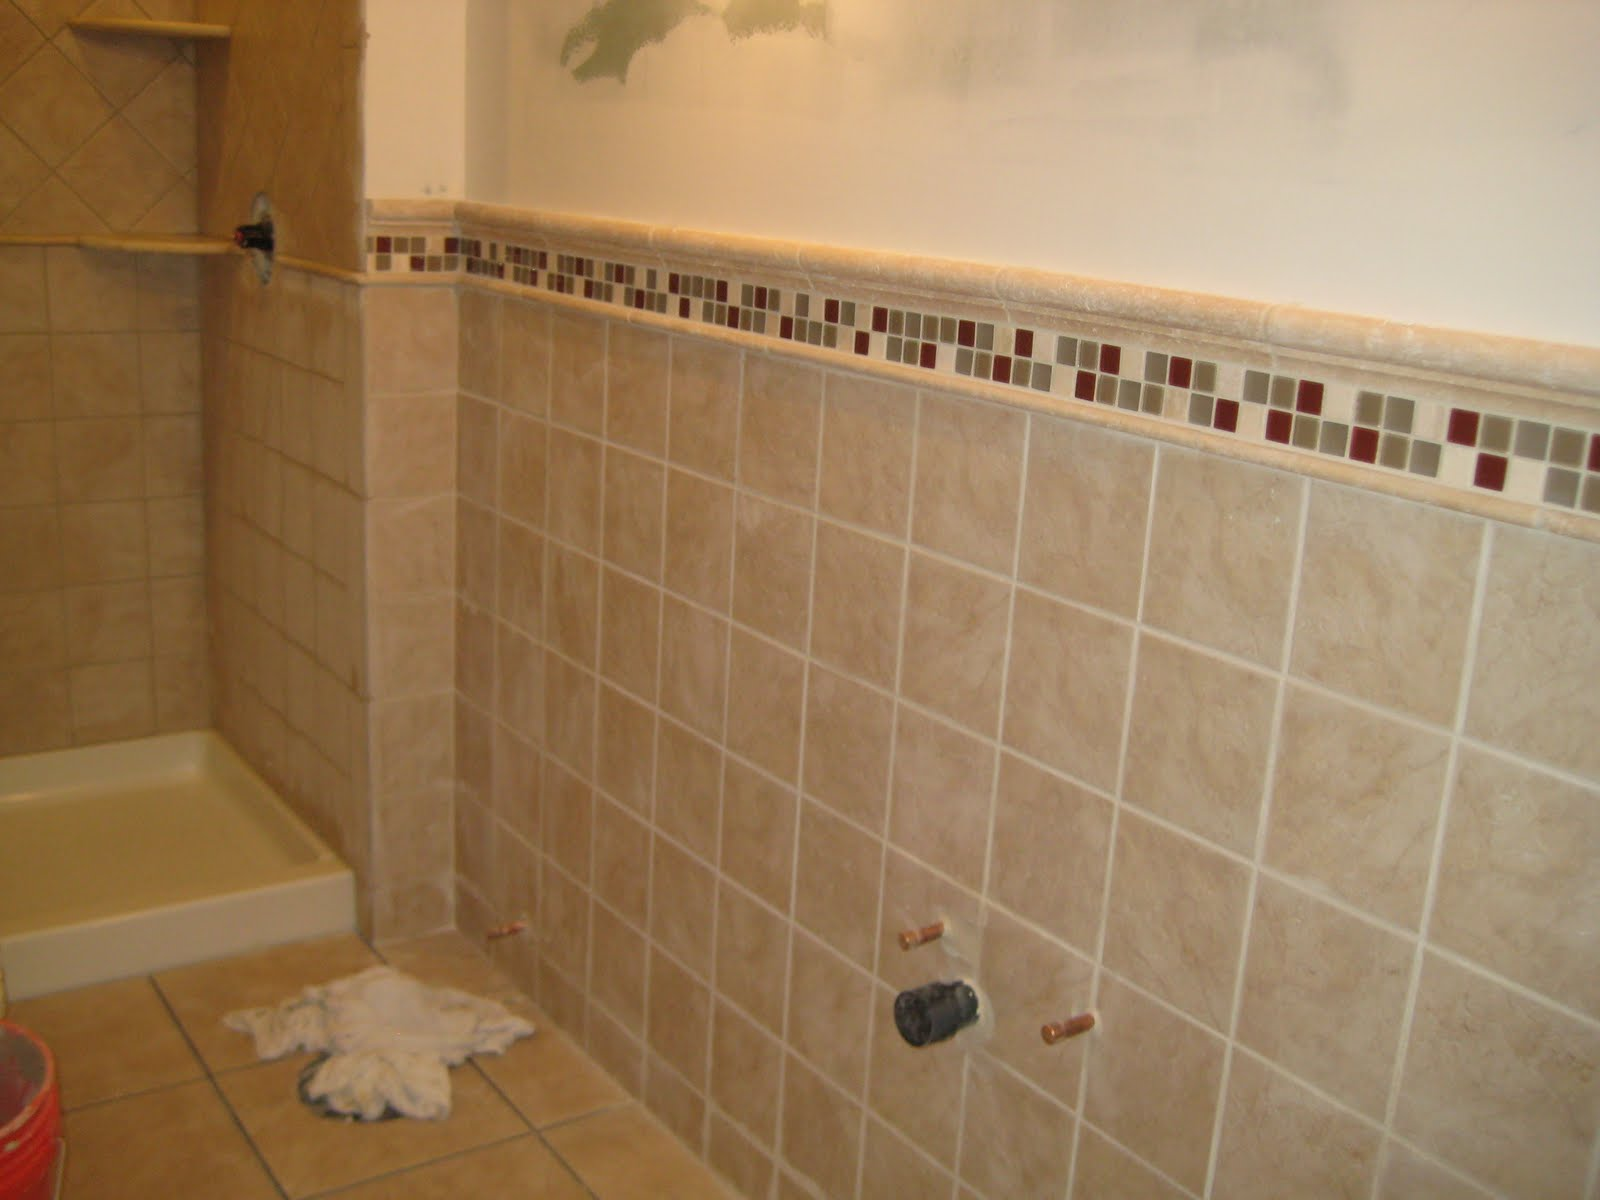 Complete Home Remodeling And Construction 856-956-6425